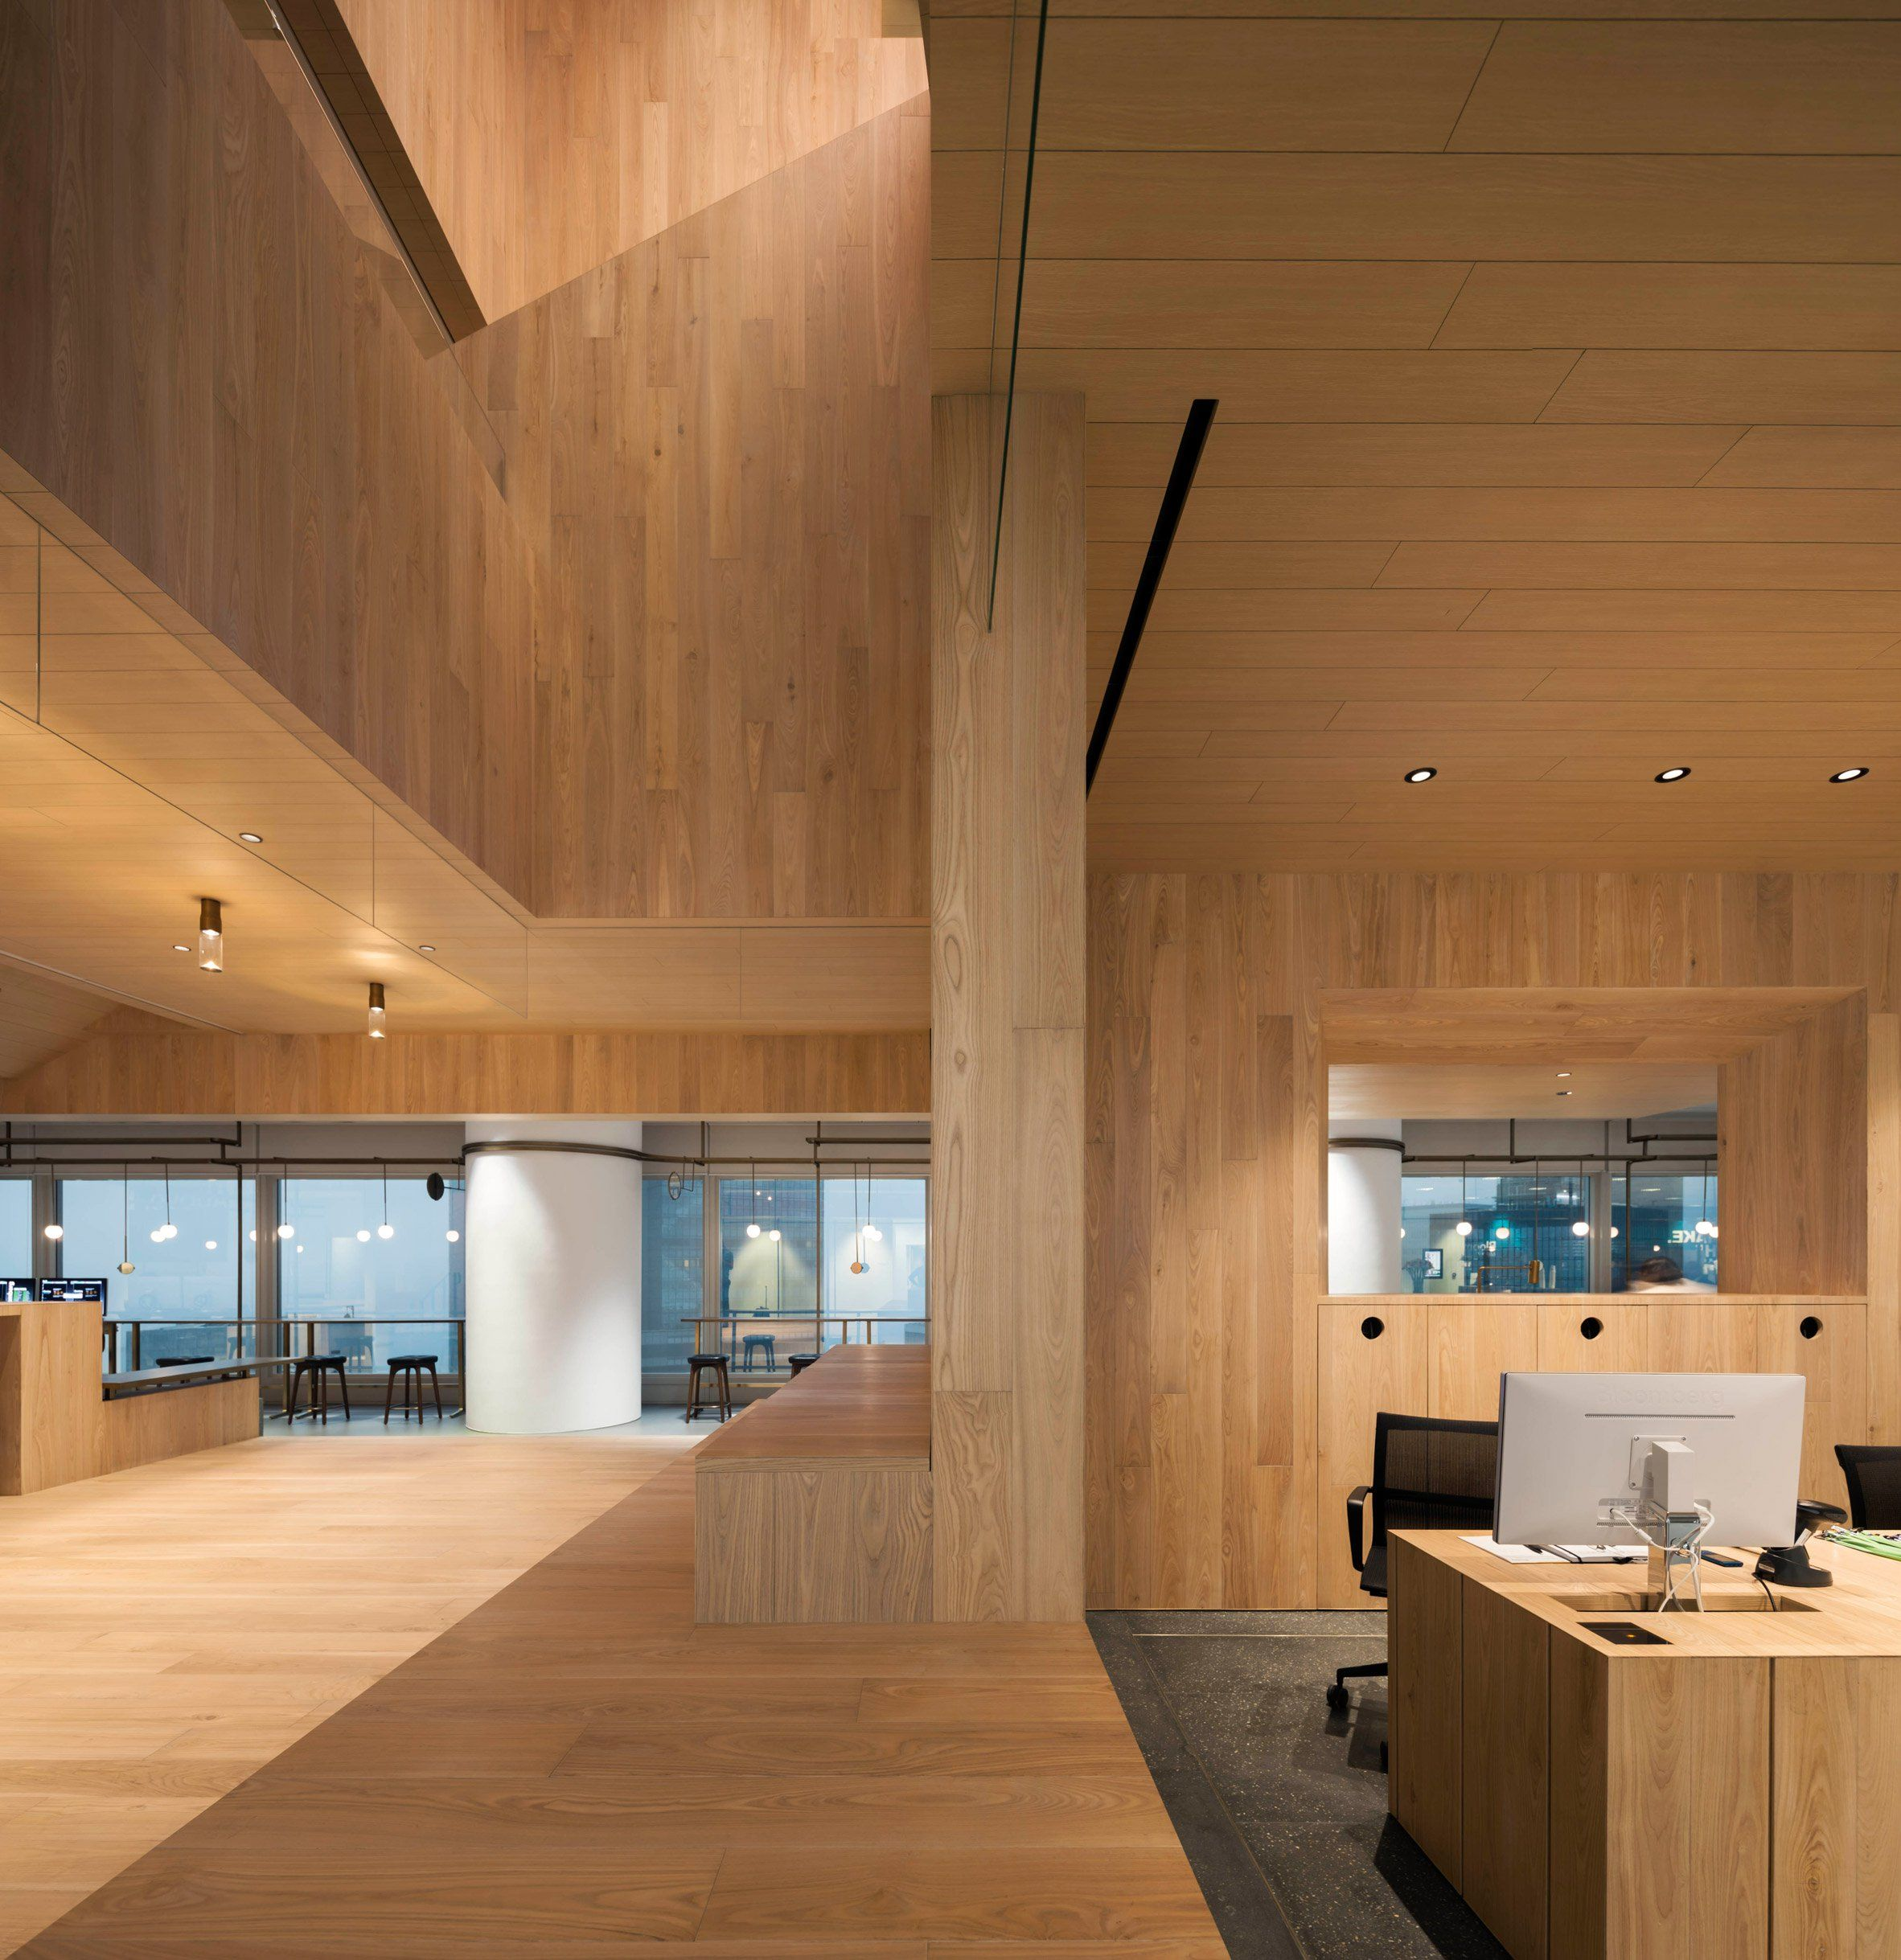 Home Design Ideas Hong Kong: Bloomberg Hong Kong Office By Neri&Hu